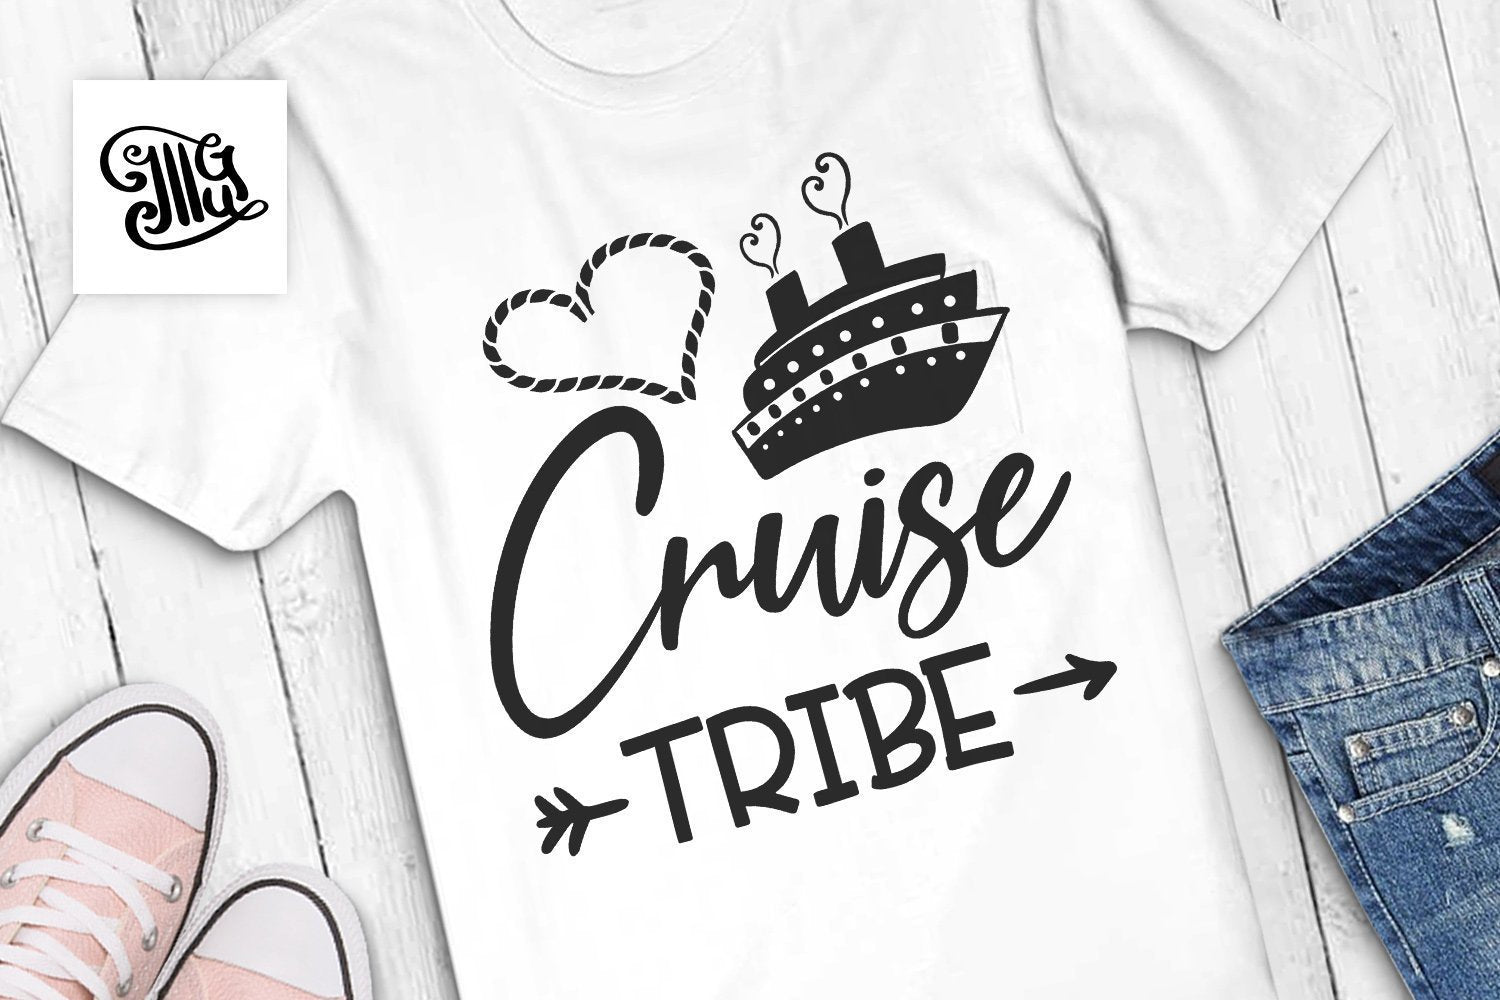 Free Cruise Svg Files for Funny Cruise Shirts | Cruise Tribe SVG-by Illustrator Guru